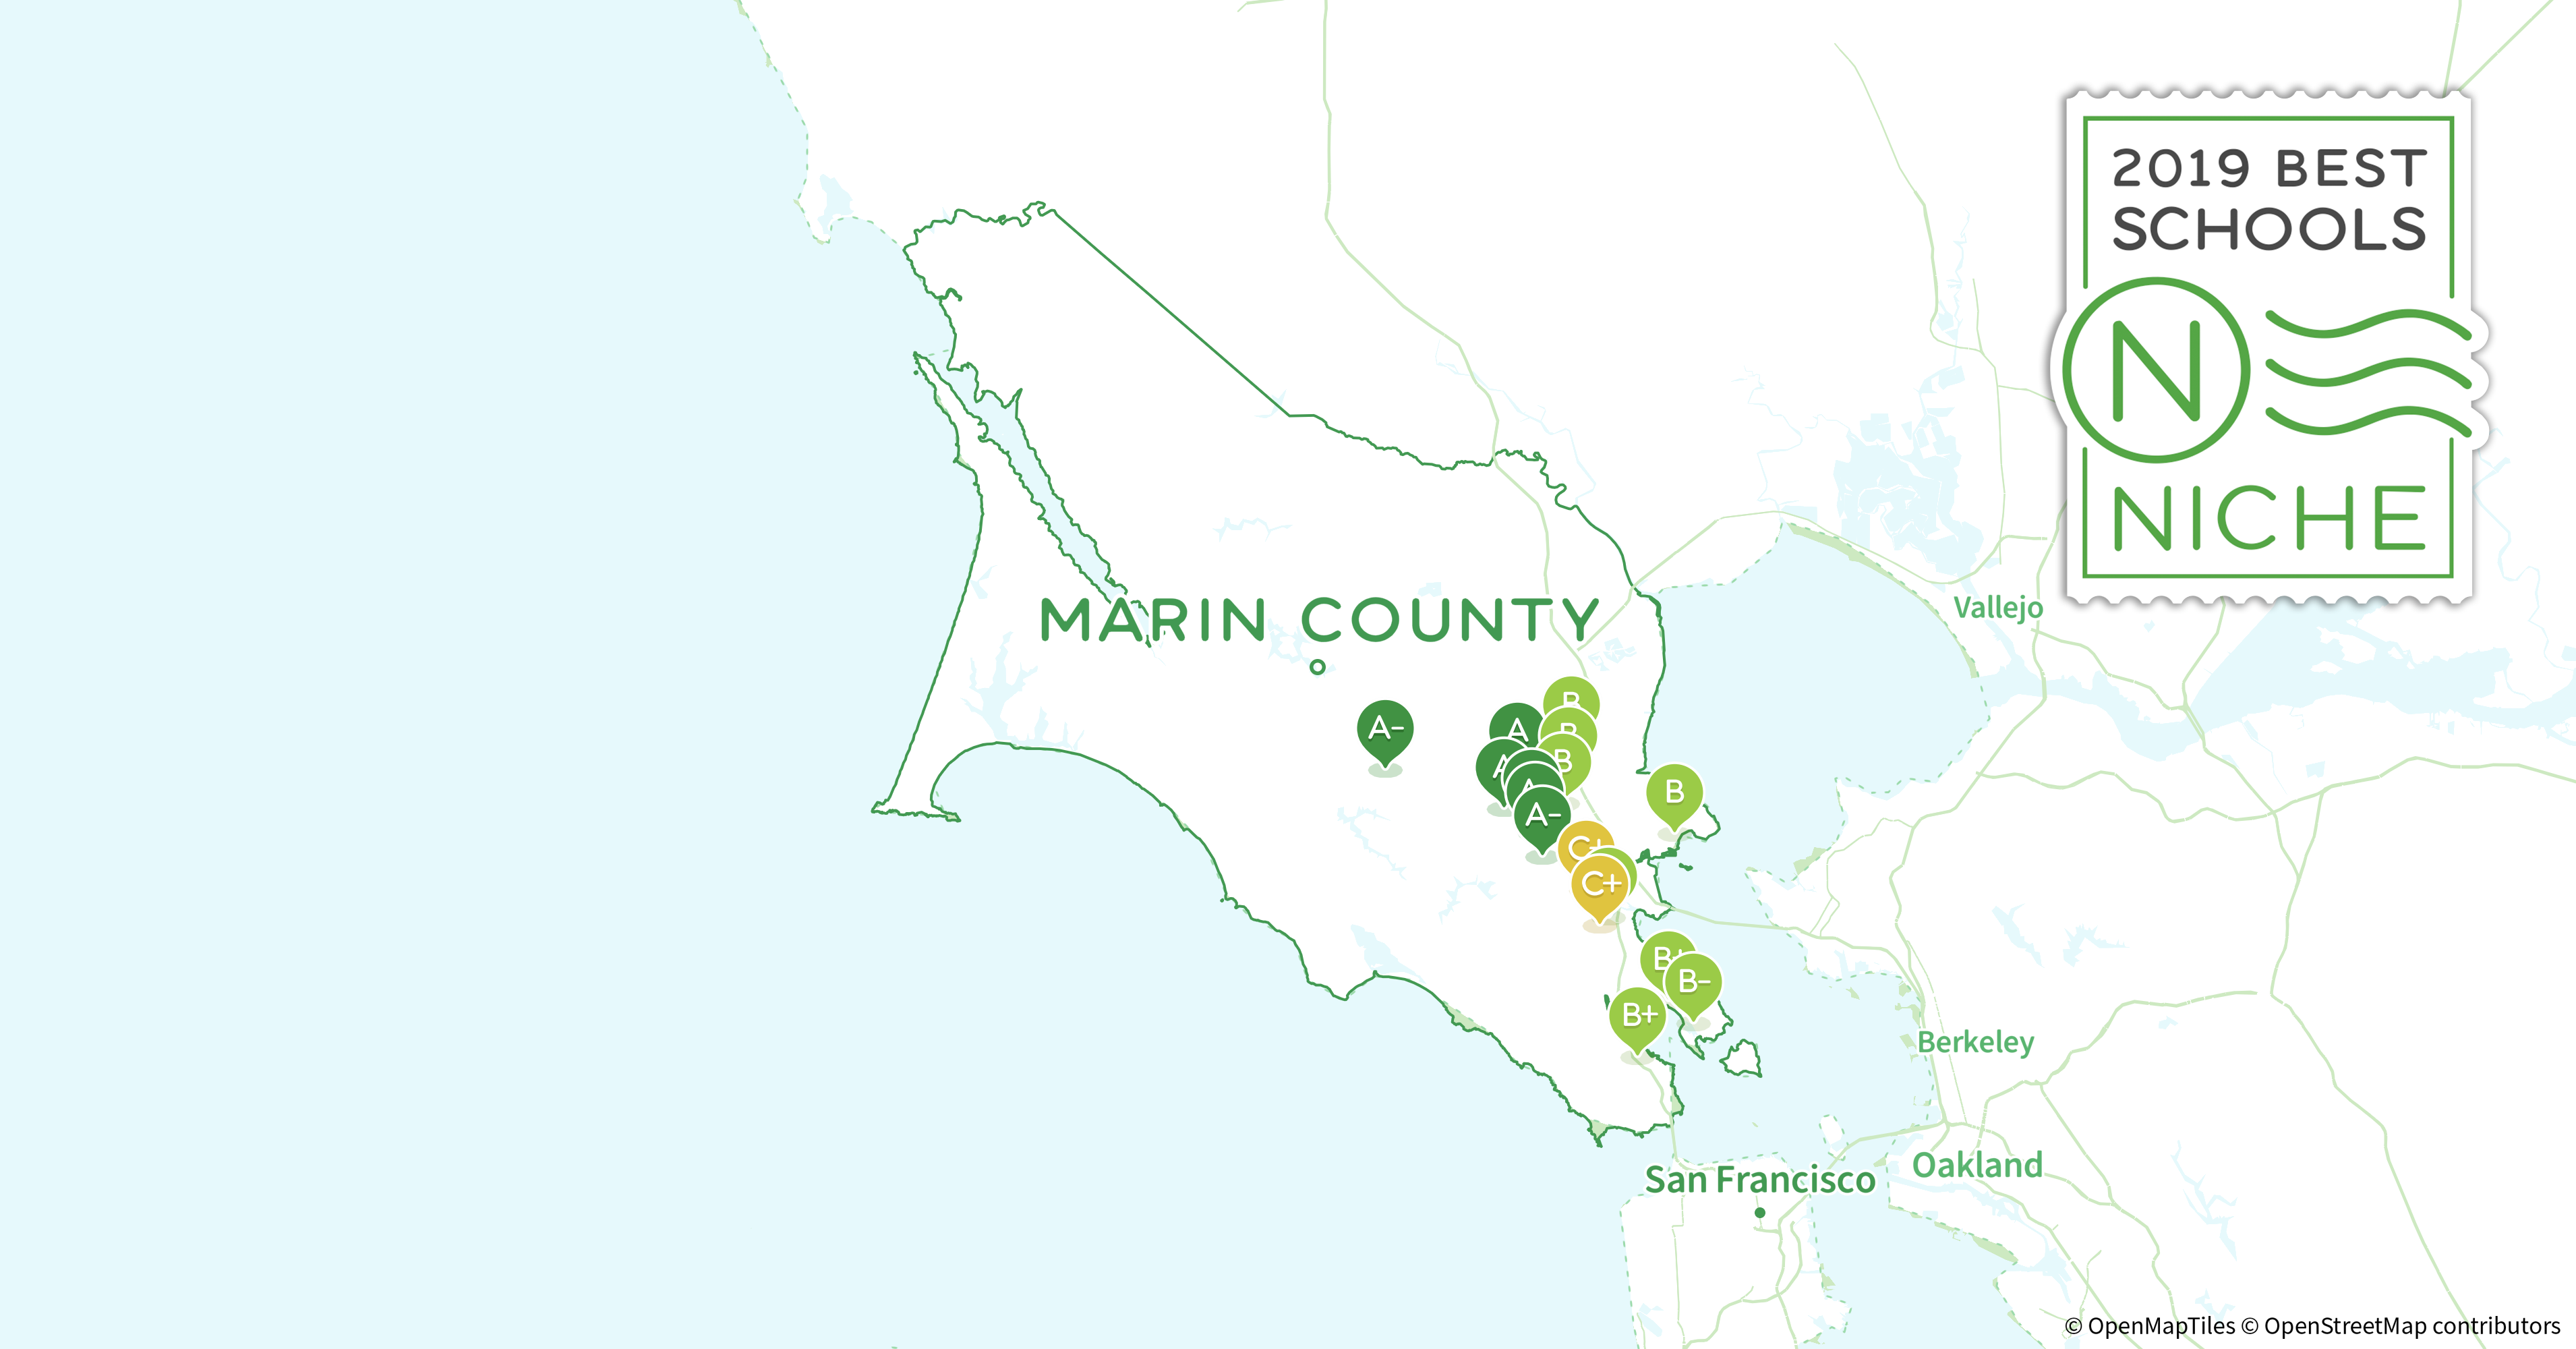 2019 Largest Private s in Marin County, CA - Niche on pepperwood ca map, san luis obispo county ca map, port of oakland ca map, east bay area ca map, sacramento valley ca map, lake county ca map, lucia ca map, dillon beach map, alpine lake ca map, san francisco novato ca map, san rafael ca street map, yolo county map map, san andreas fault ca map, tejon ranch ca map, santa clara county ca map, santa barbara county map map, allegheny county watershed map, ocean county ca map, eldorado county ca map, crockett ca map,